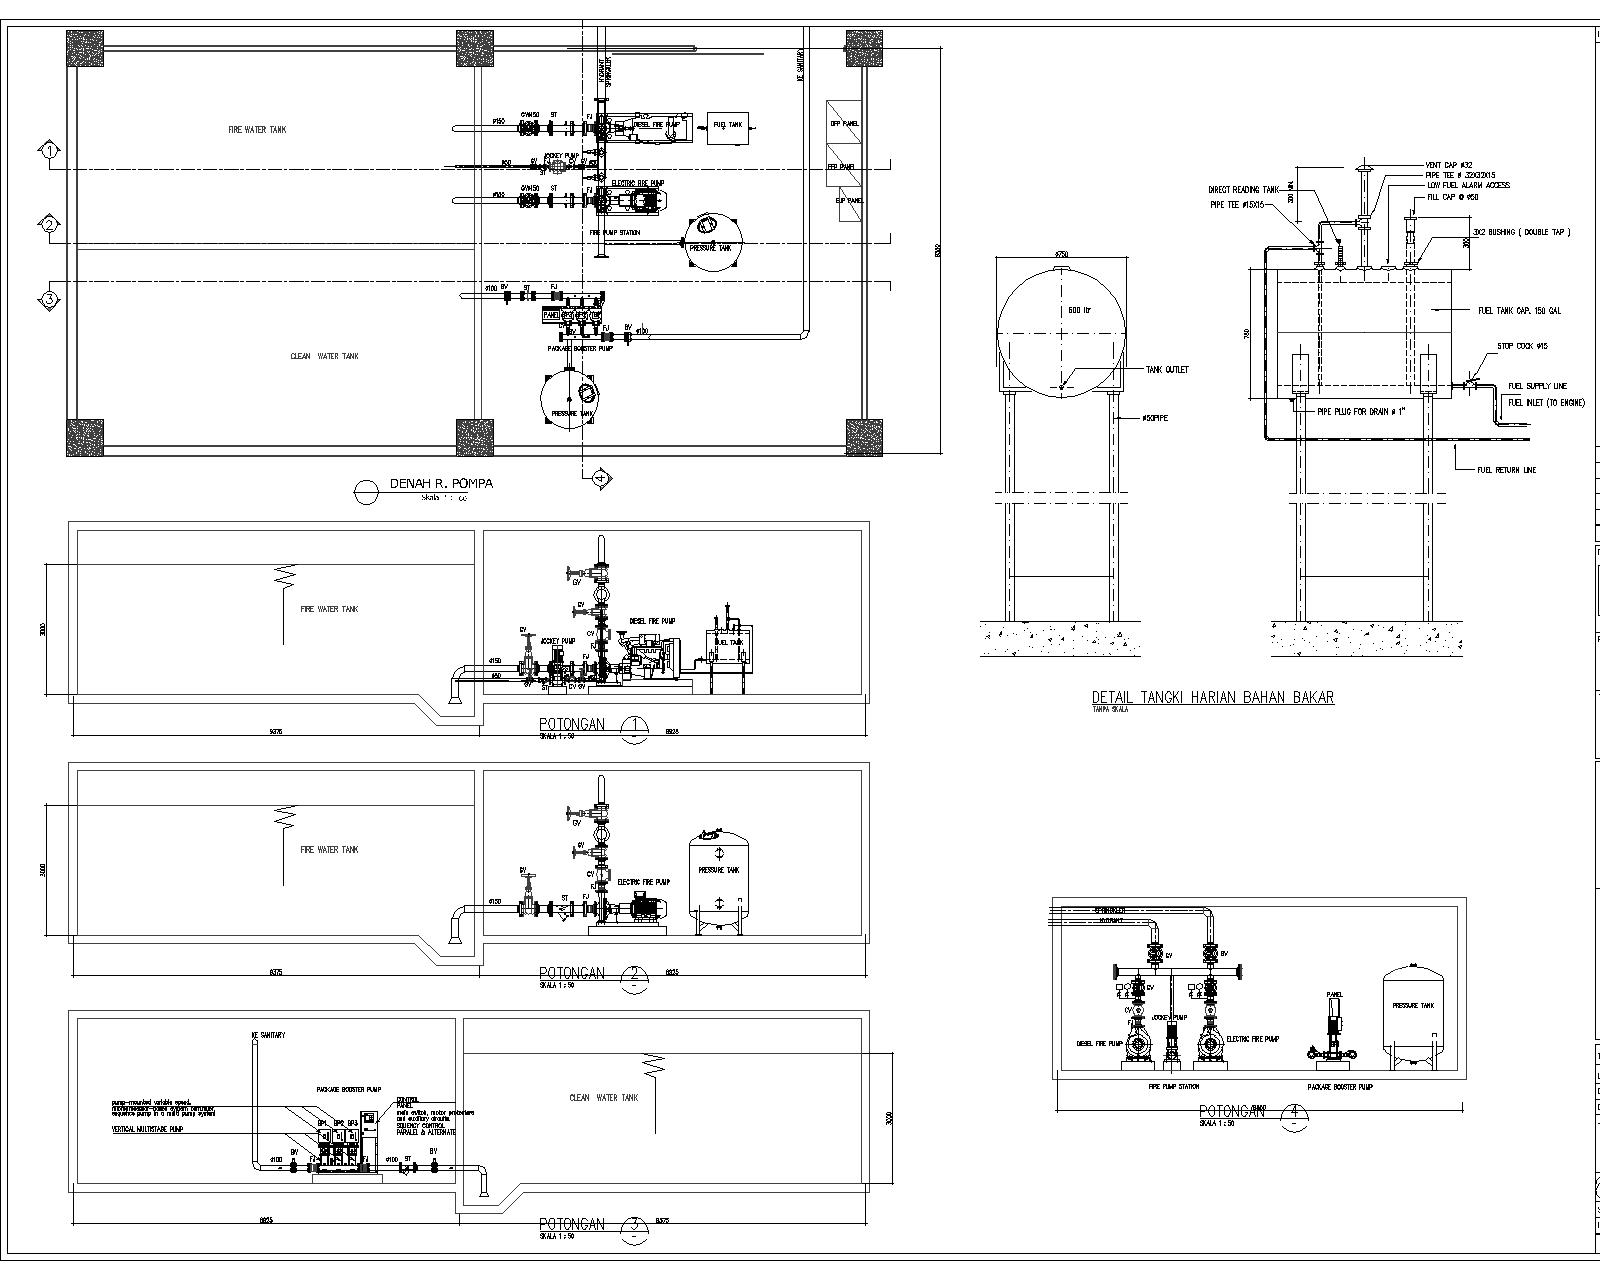 wiring diagram panel pompa hydrant